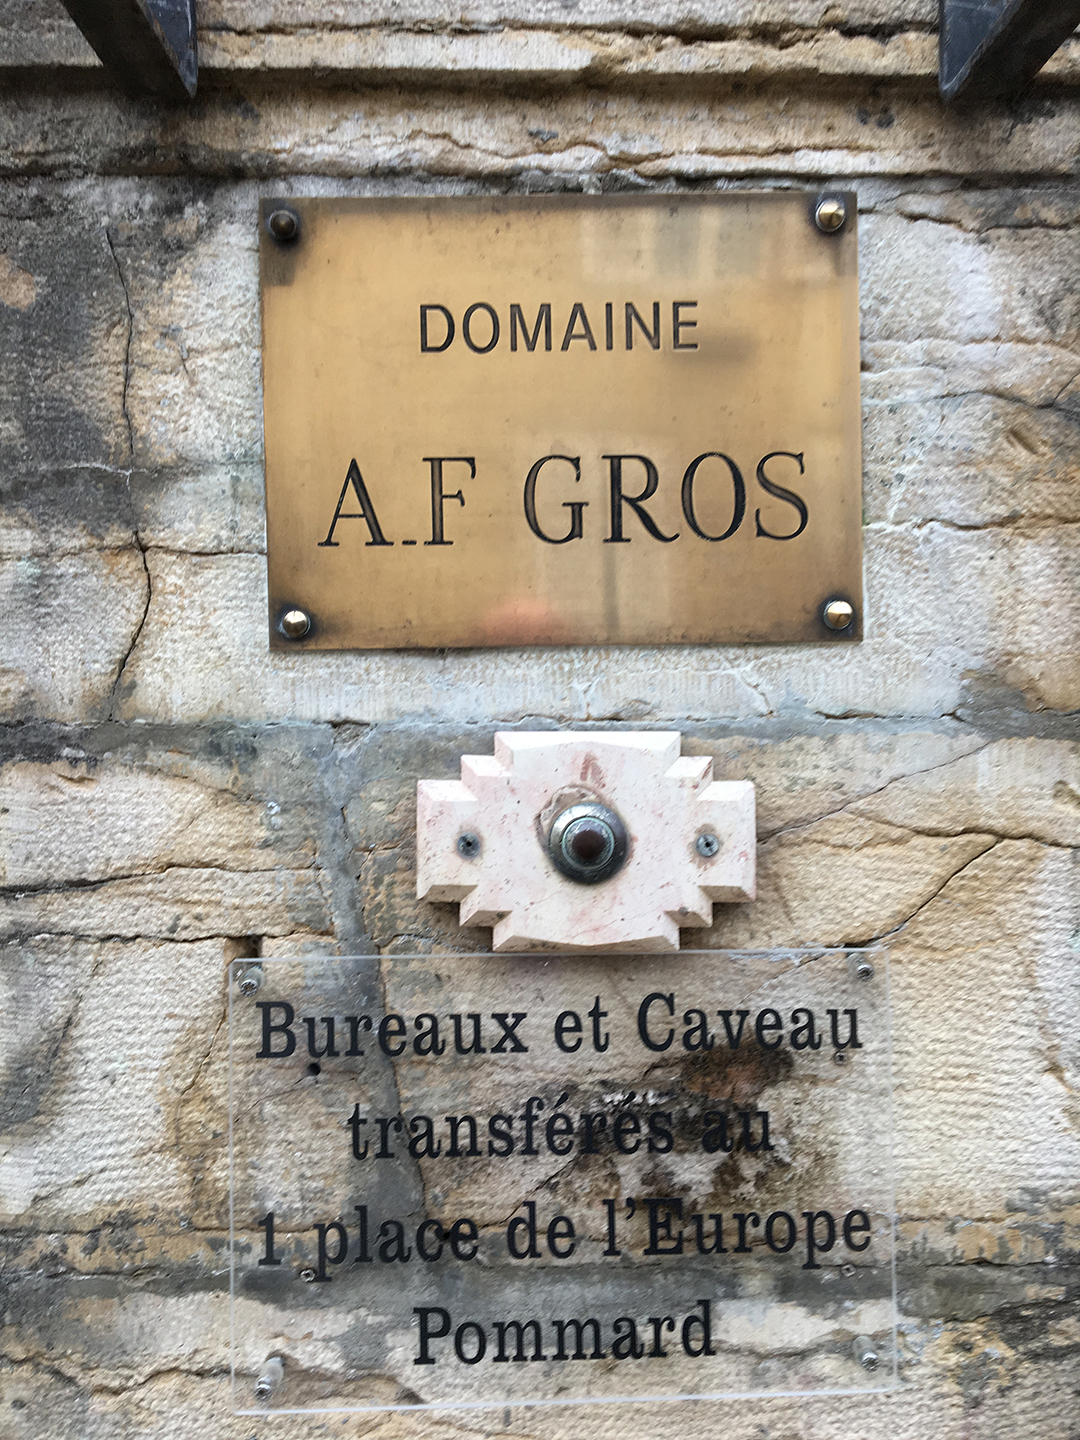 Brass nameplate DOMAINE A.F. GROS on a stone wall